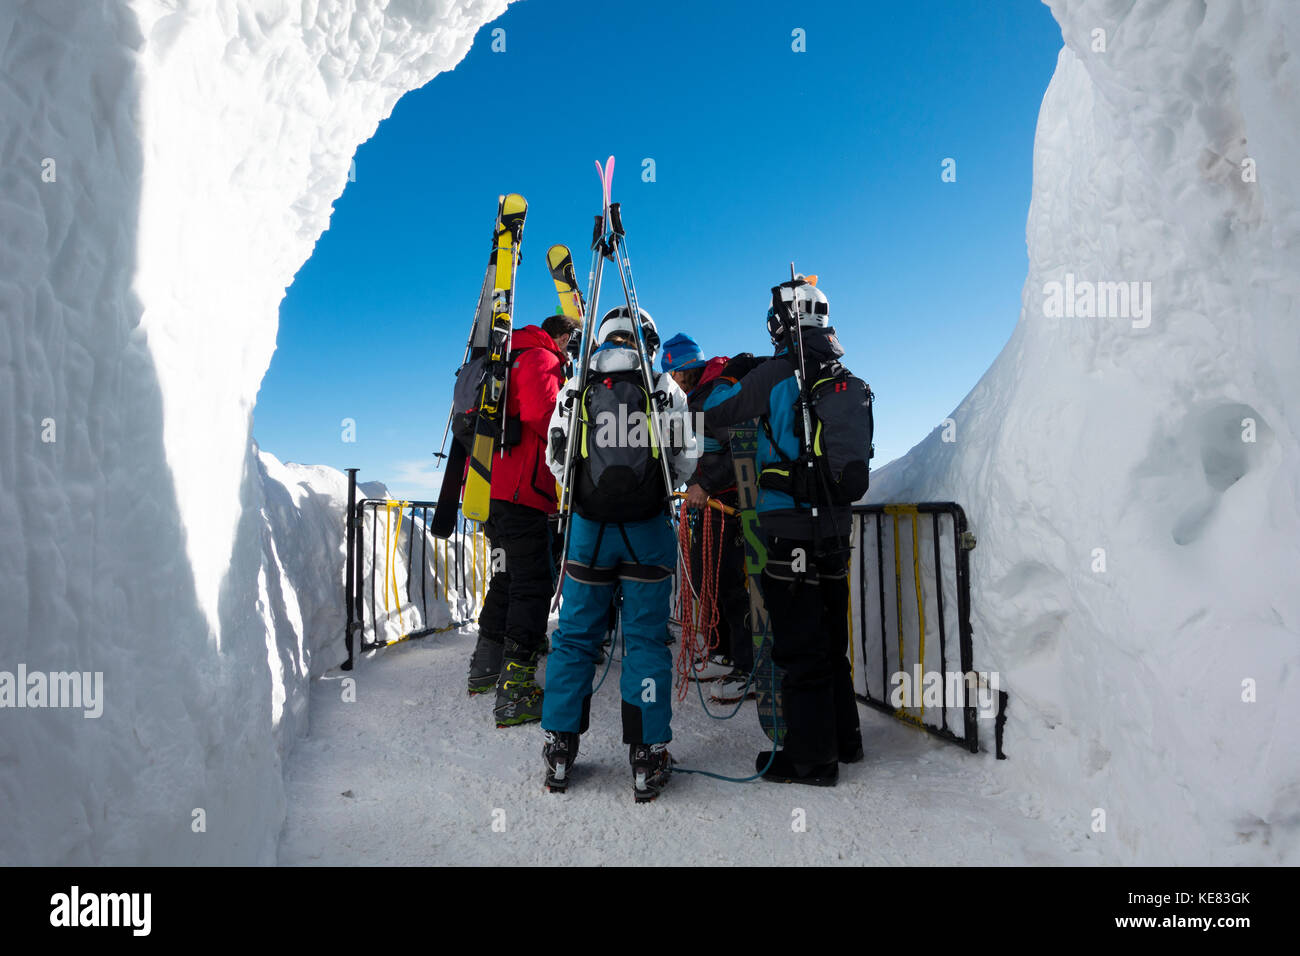 Preparing To Descend Into The Vallee Blanche, Off-Piste Skiing; Chamonix, France - Stock Image